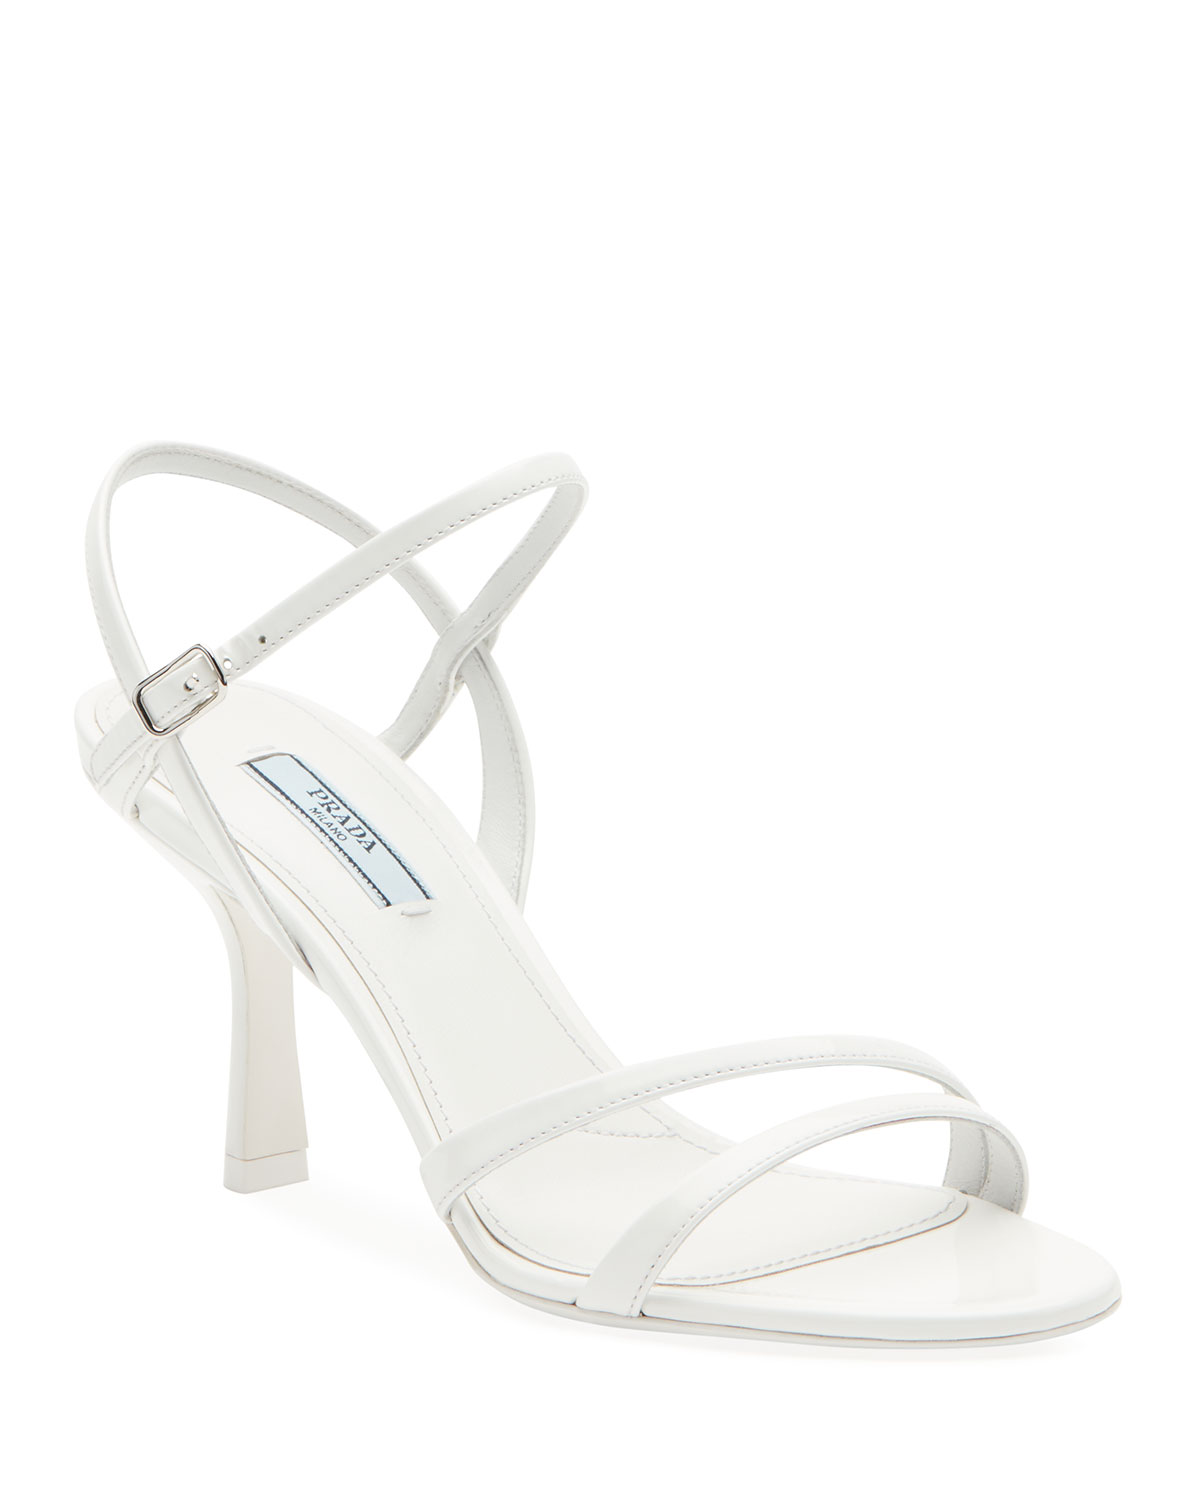 Prada Sandals PATENT STRAPPY ANKLE SANDALS